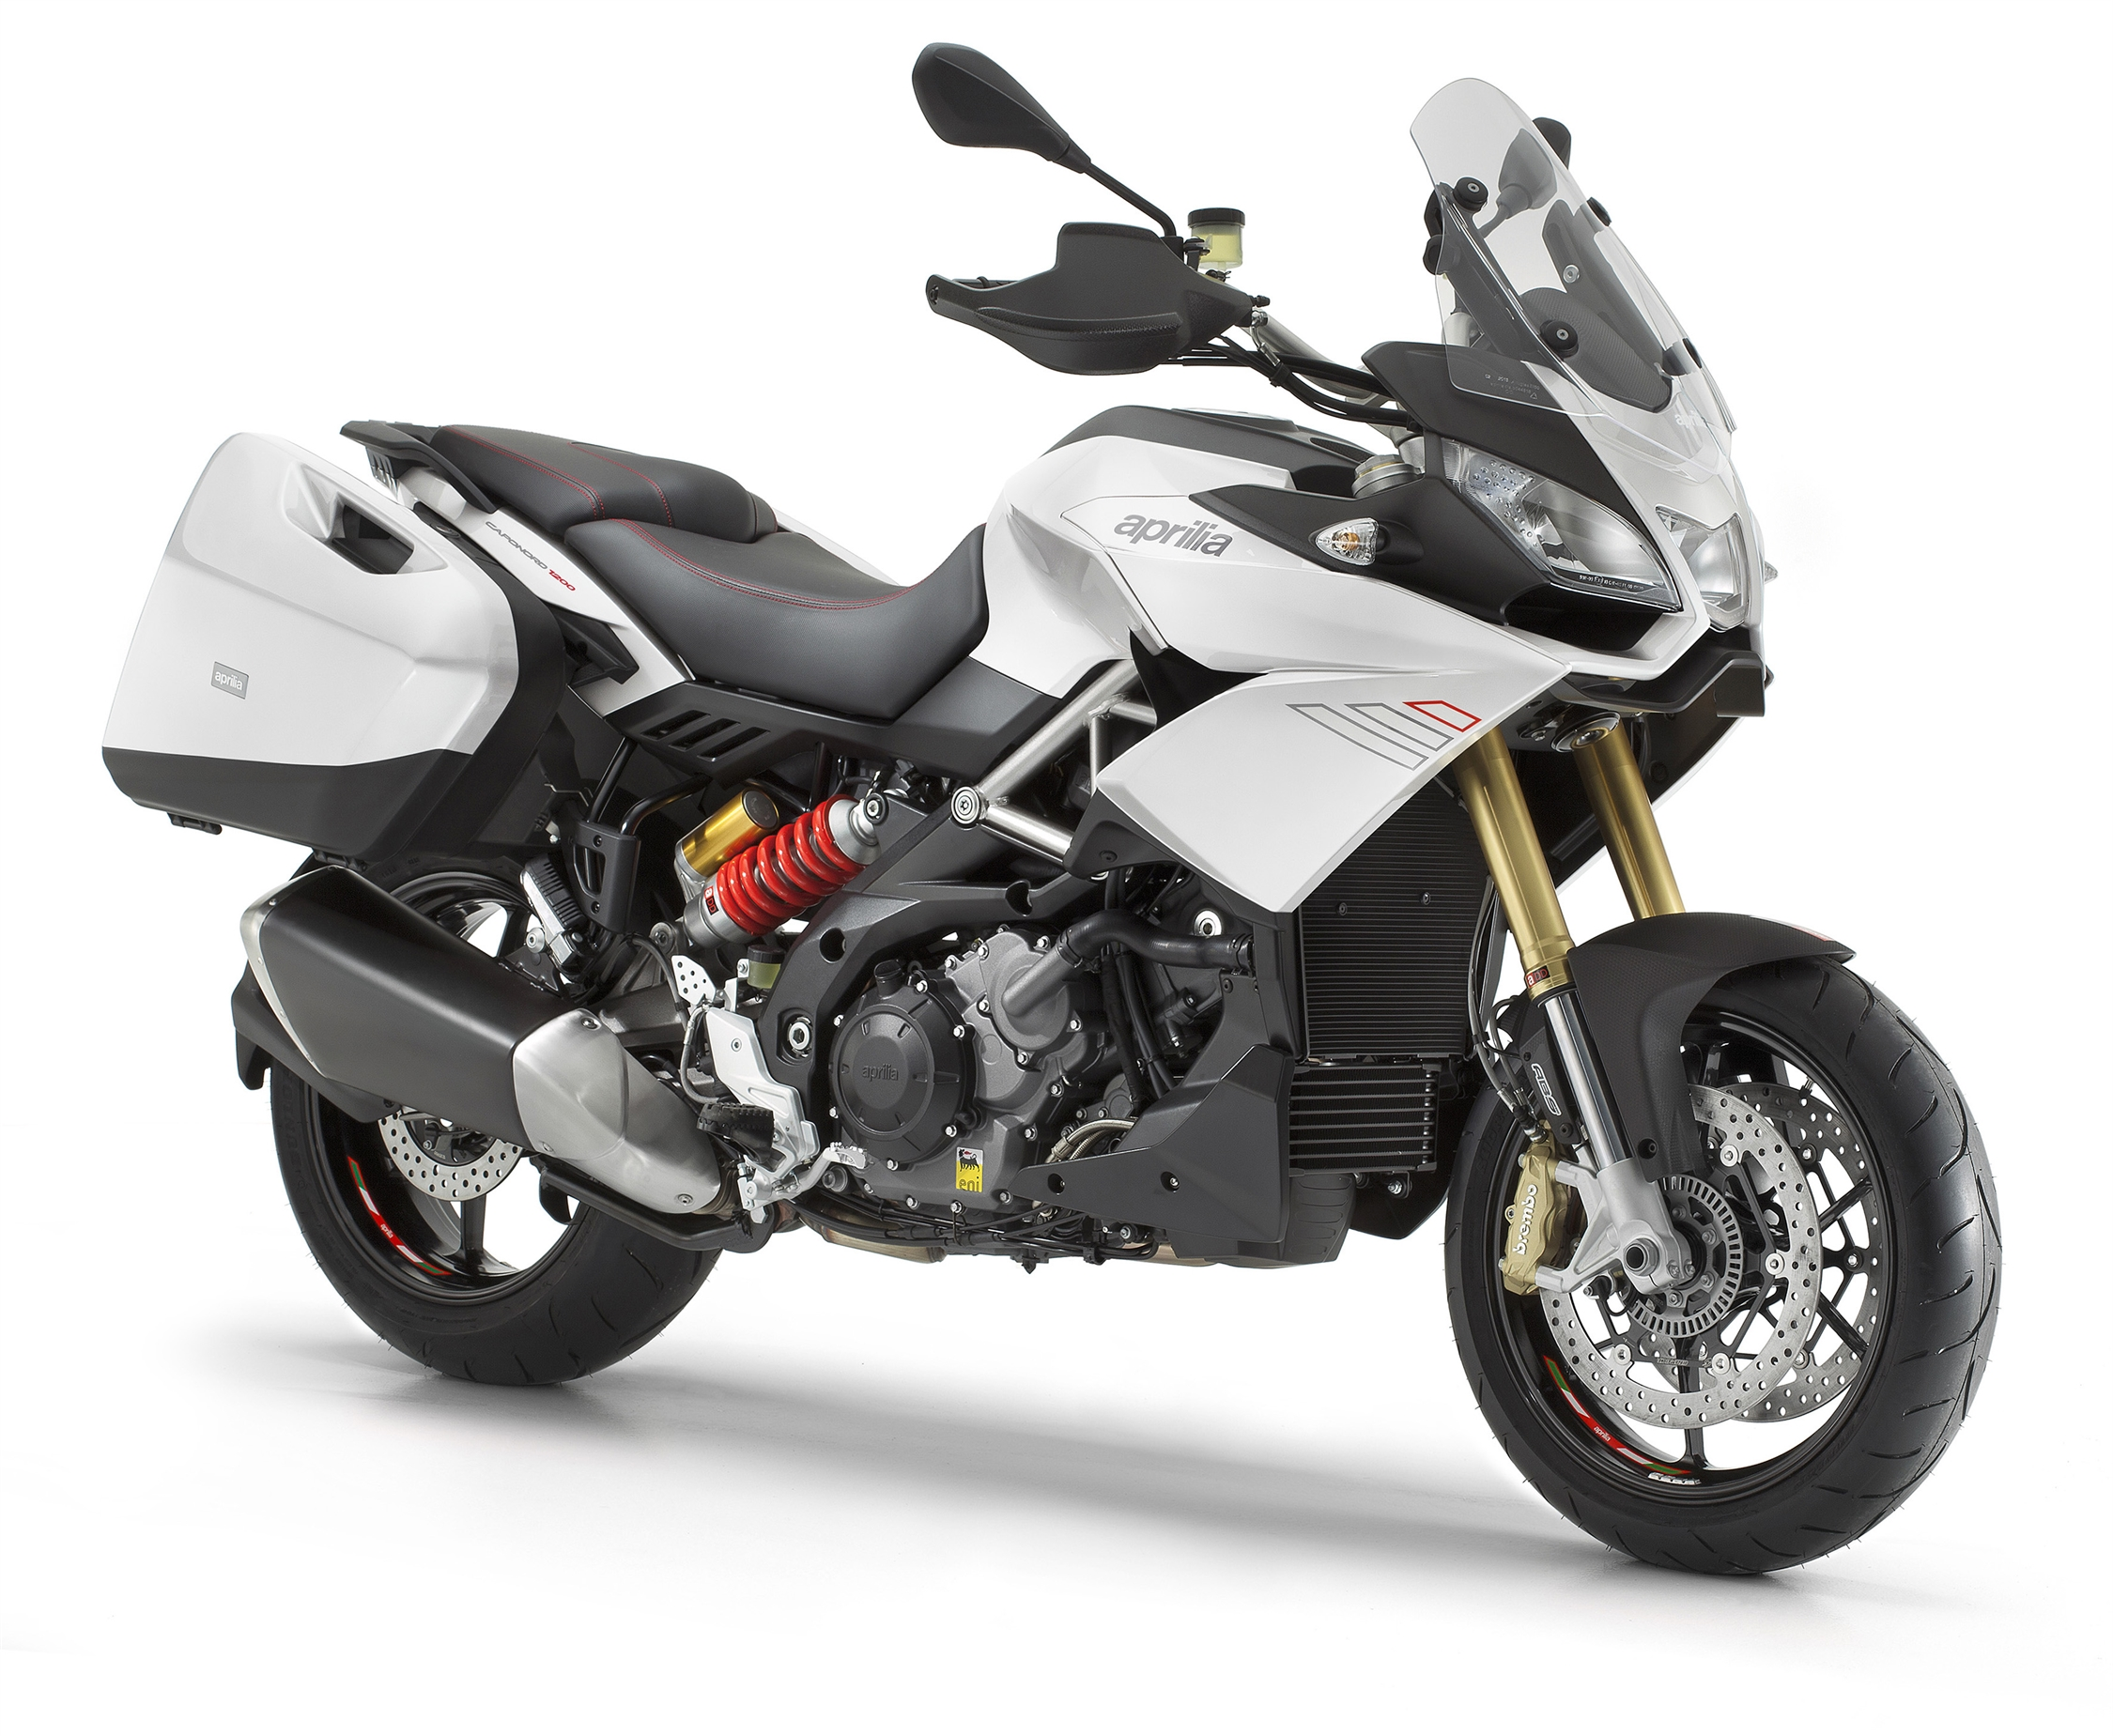 Aprilia Caponord 1200 ABS Travel Pack pics #8300